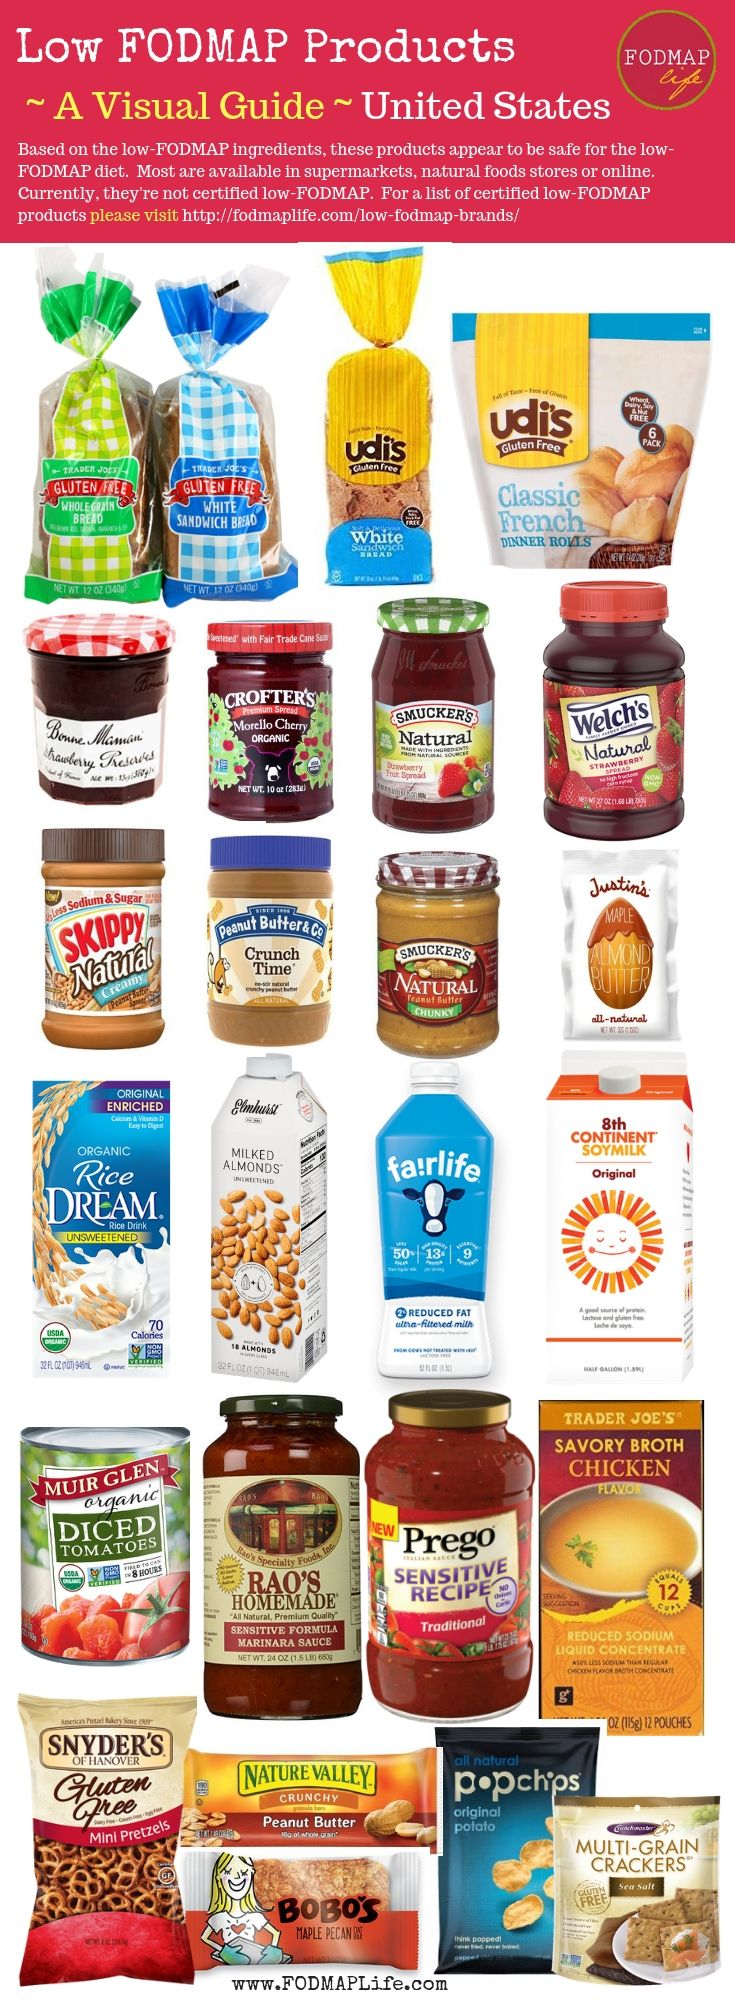 Low-FODMAP Products - A Visual Guide